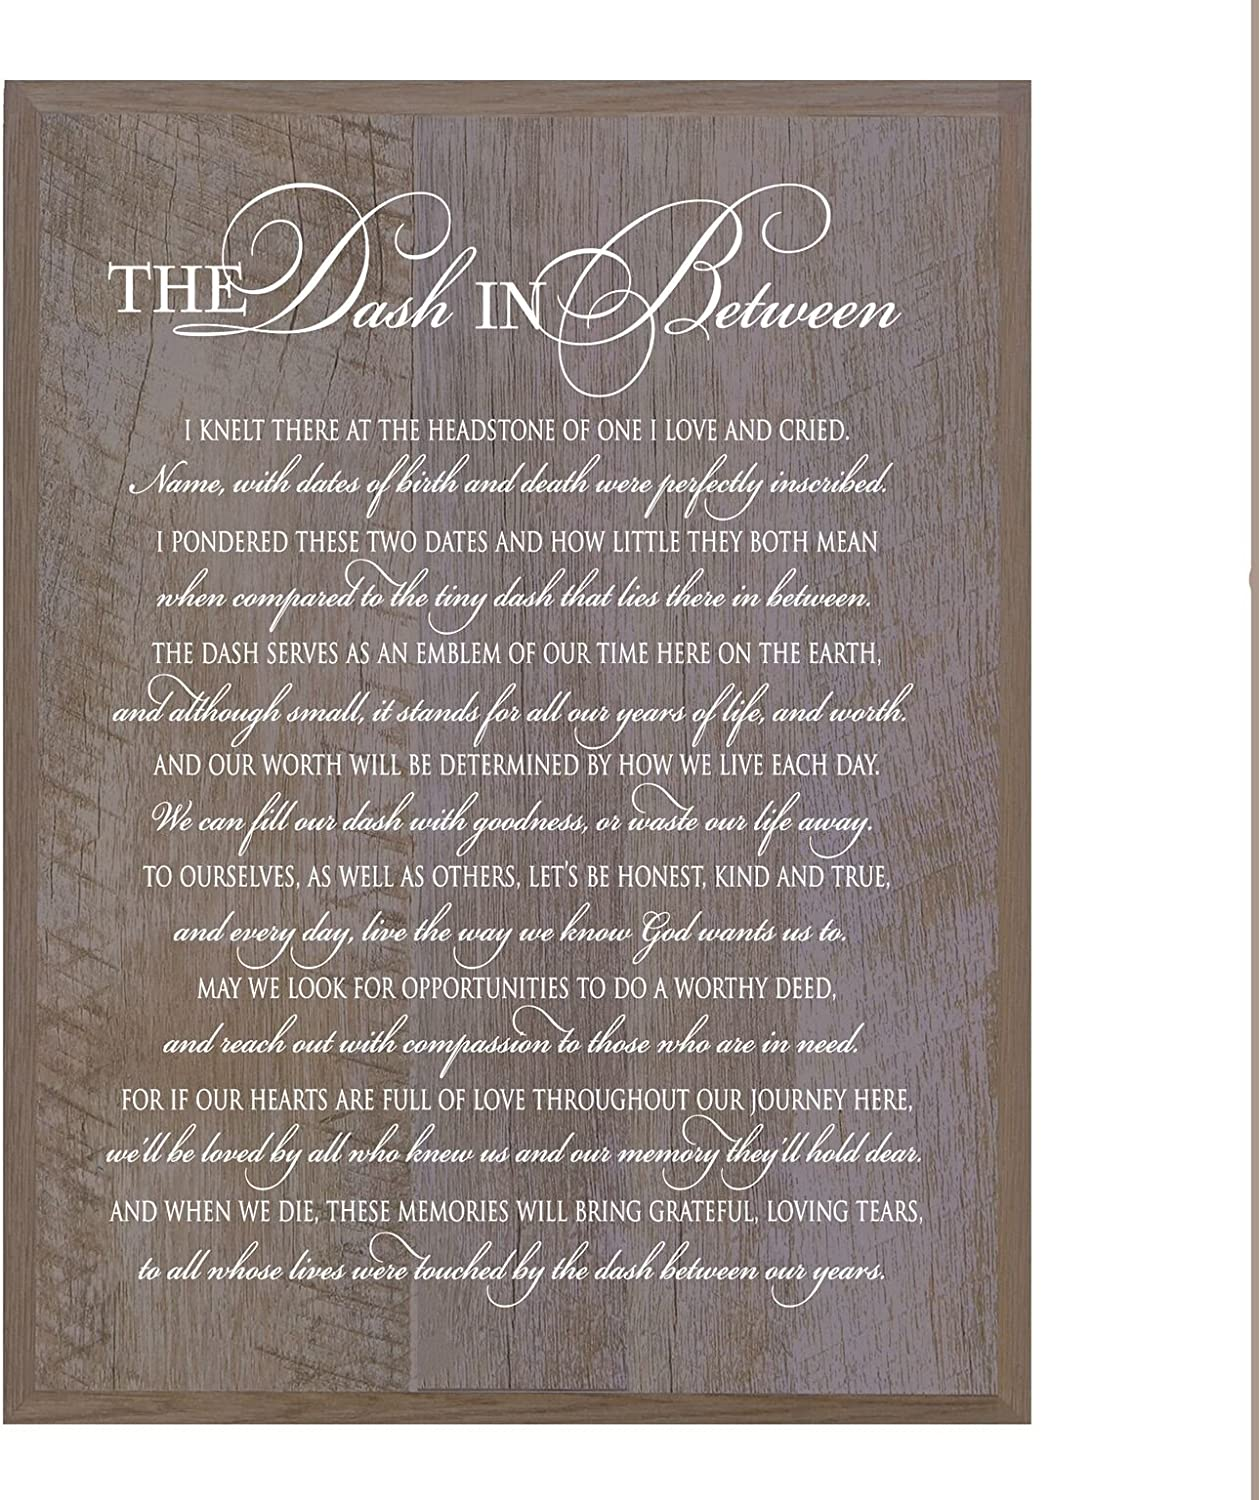 LifeSong Milestones Memorial Gift for Loss of Loved one, Mother, Father, Wife, Husband, Son, Daughter Sympathy Gift Ideas Wall Plaque The Dash in Between Measures 12 x 15 (Barnwood)